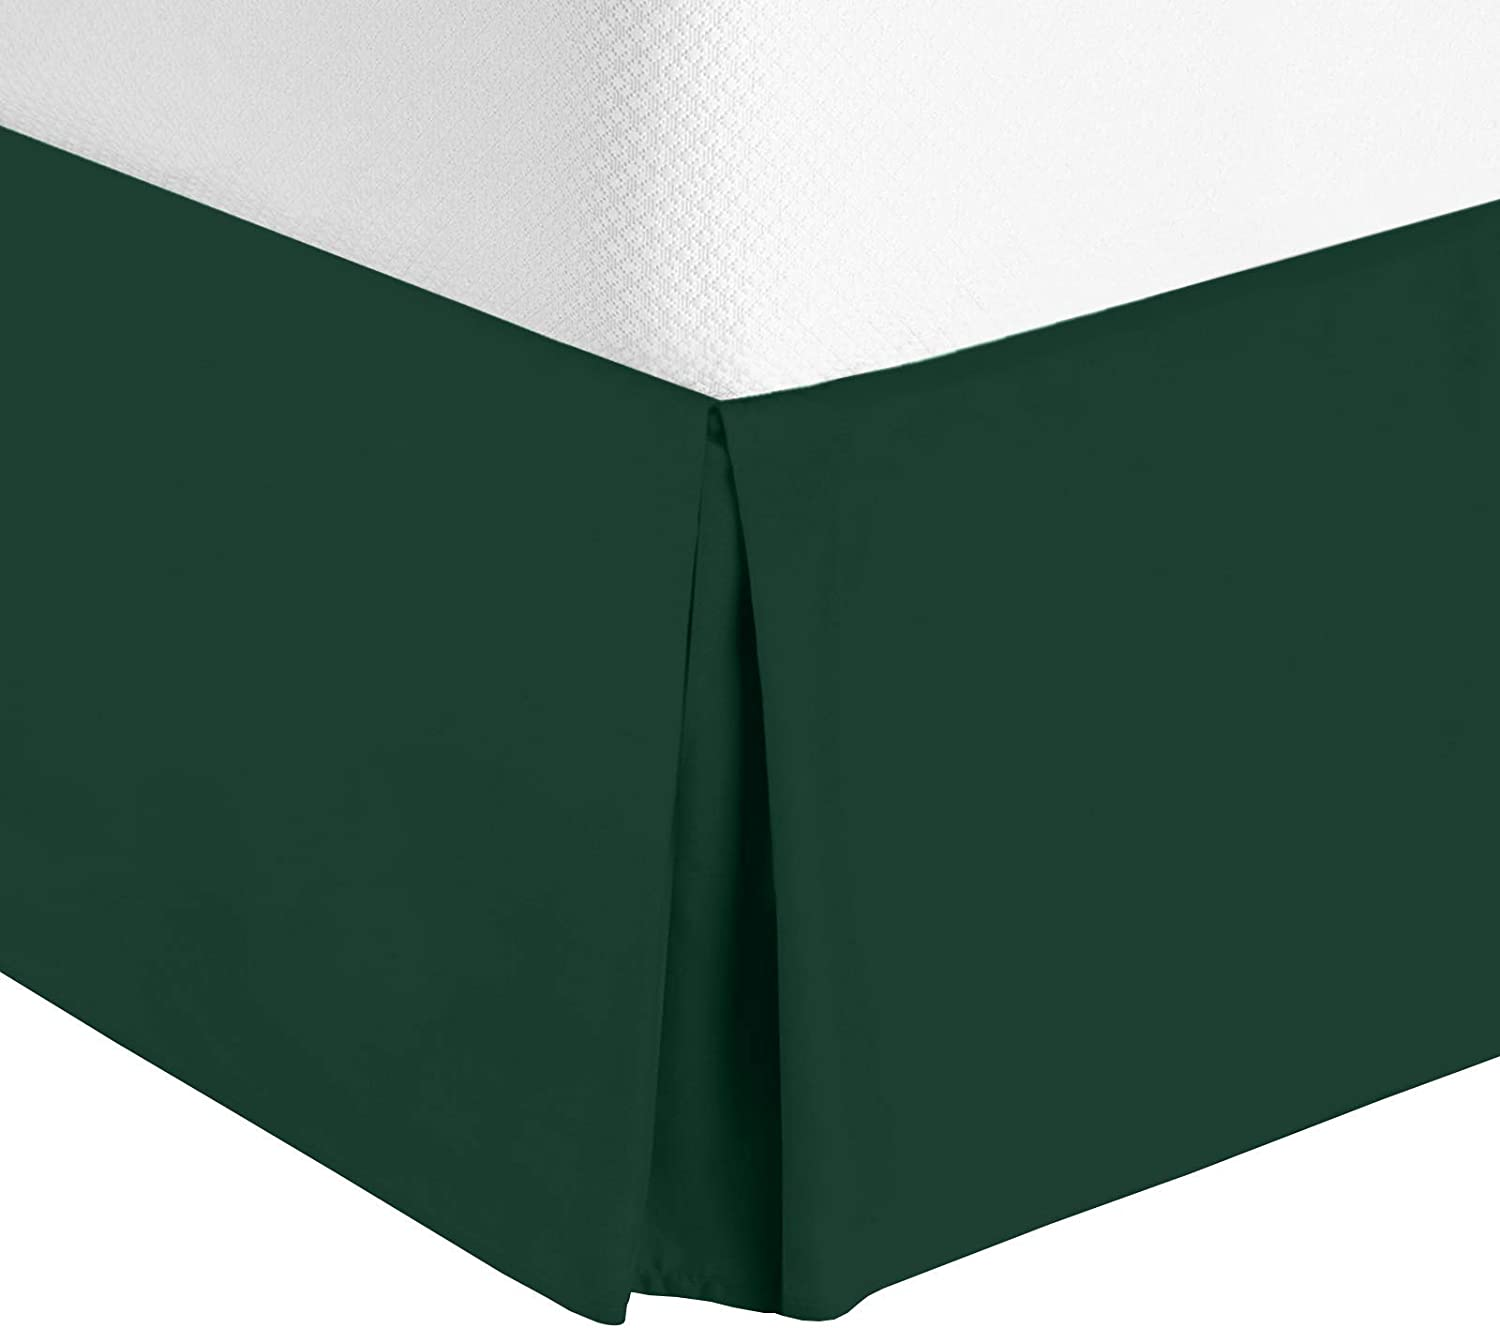 Nestl Bedding Bed Skirt - Soft Double Brushed Premium Microfiber Dust Ruffle - Luxury Pleated Dust Ruffle, Hotel Quality Sleek Modern Bed Skirt, Easy Fit with 14 in Tailored Drop, Full, Hunter Green